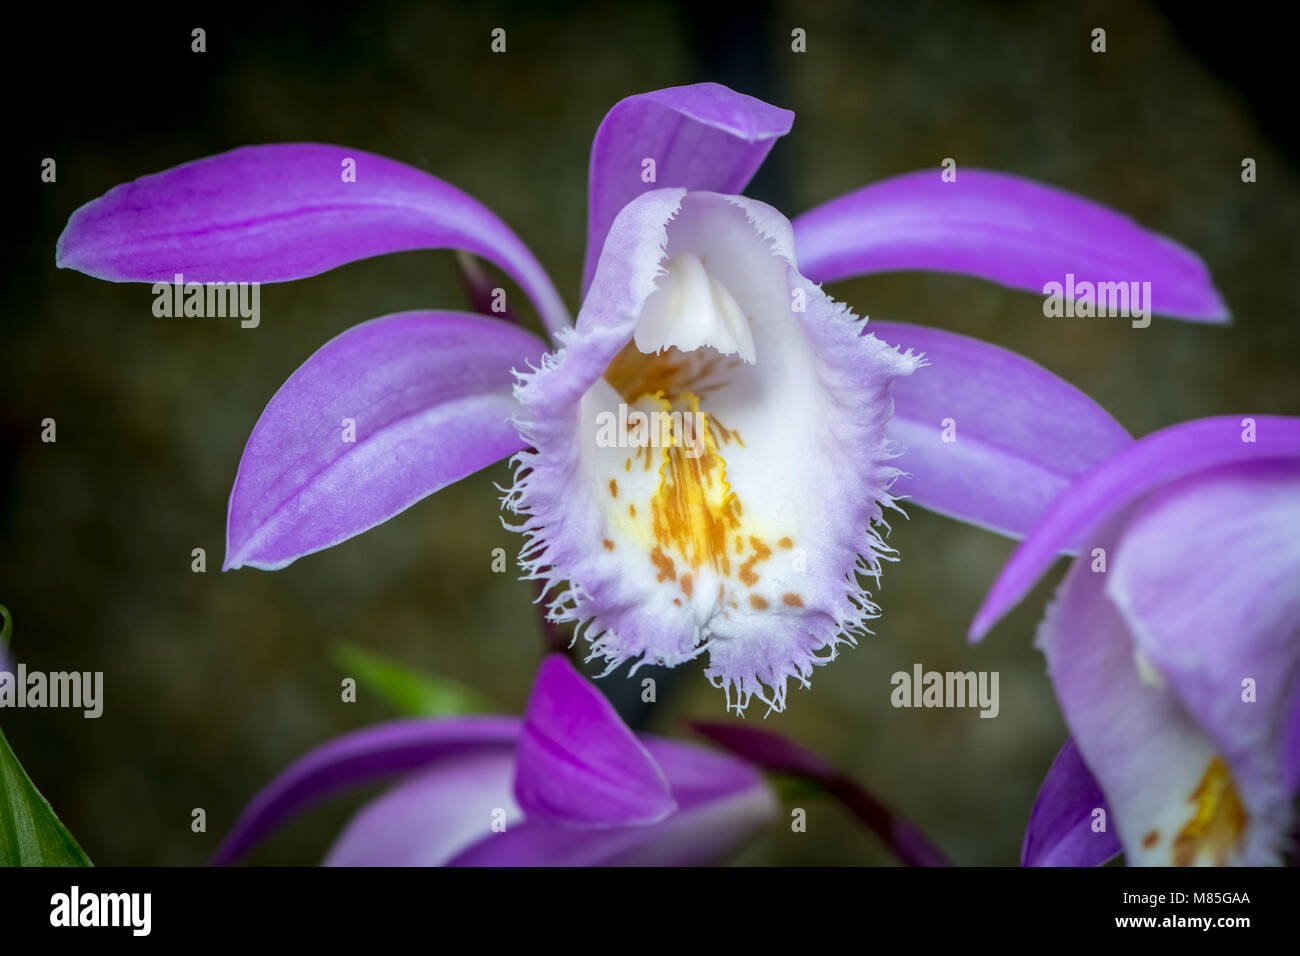 Orchid bloom (Orchidaceae) - Stock Image